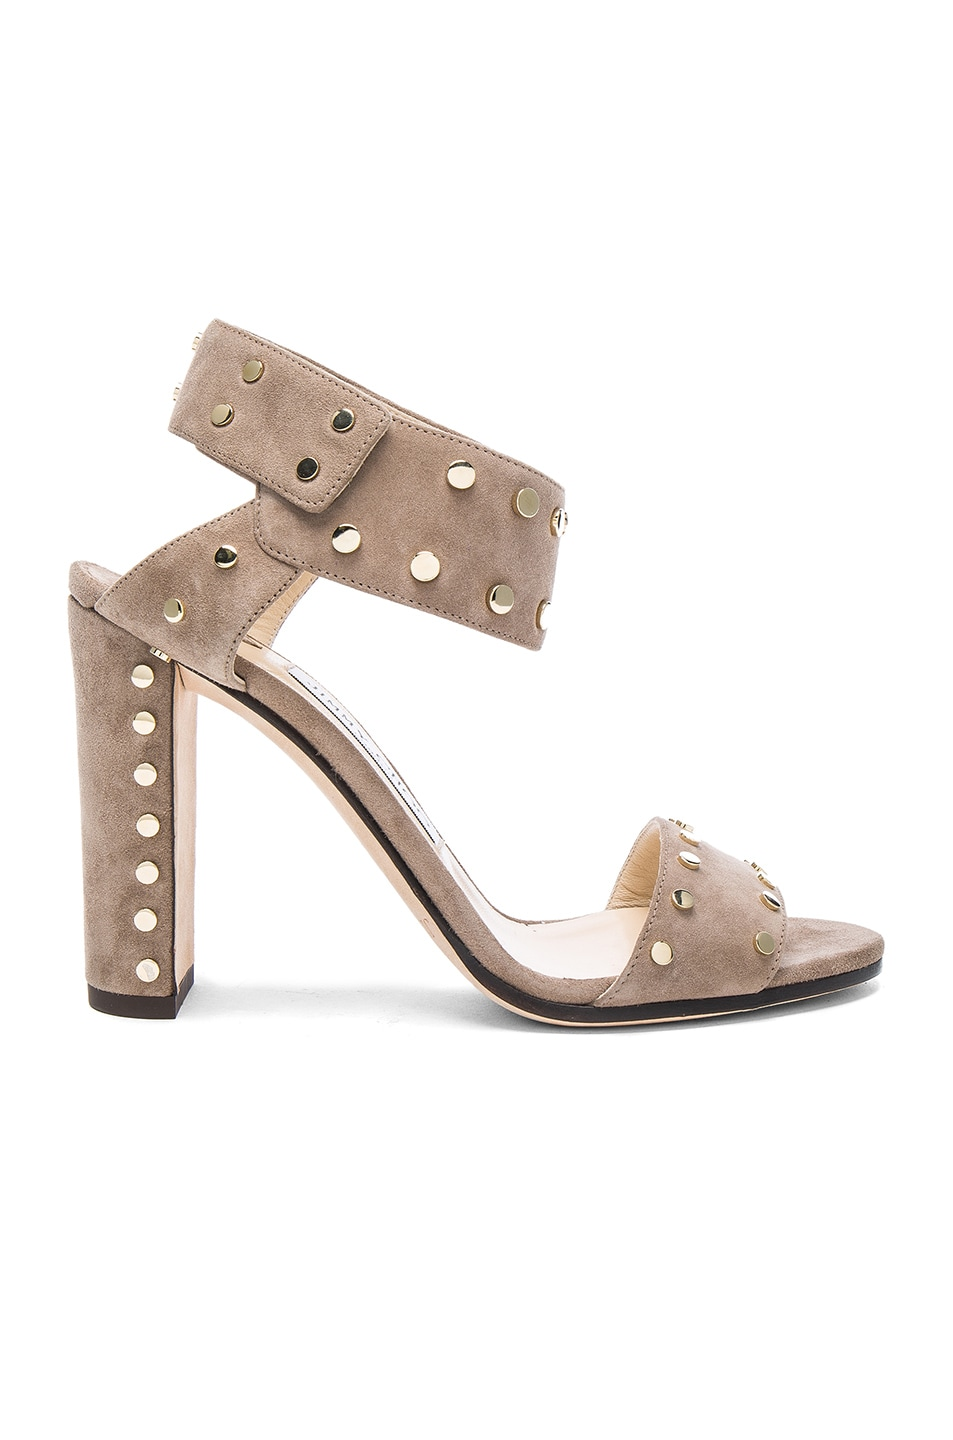 Image 1 of Jimmy Choo Veto Heel in Light Mocha & Gold